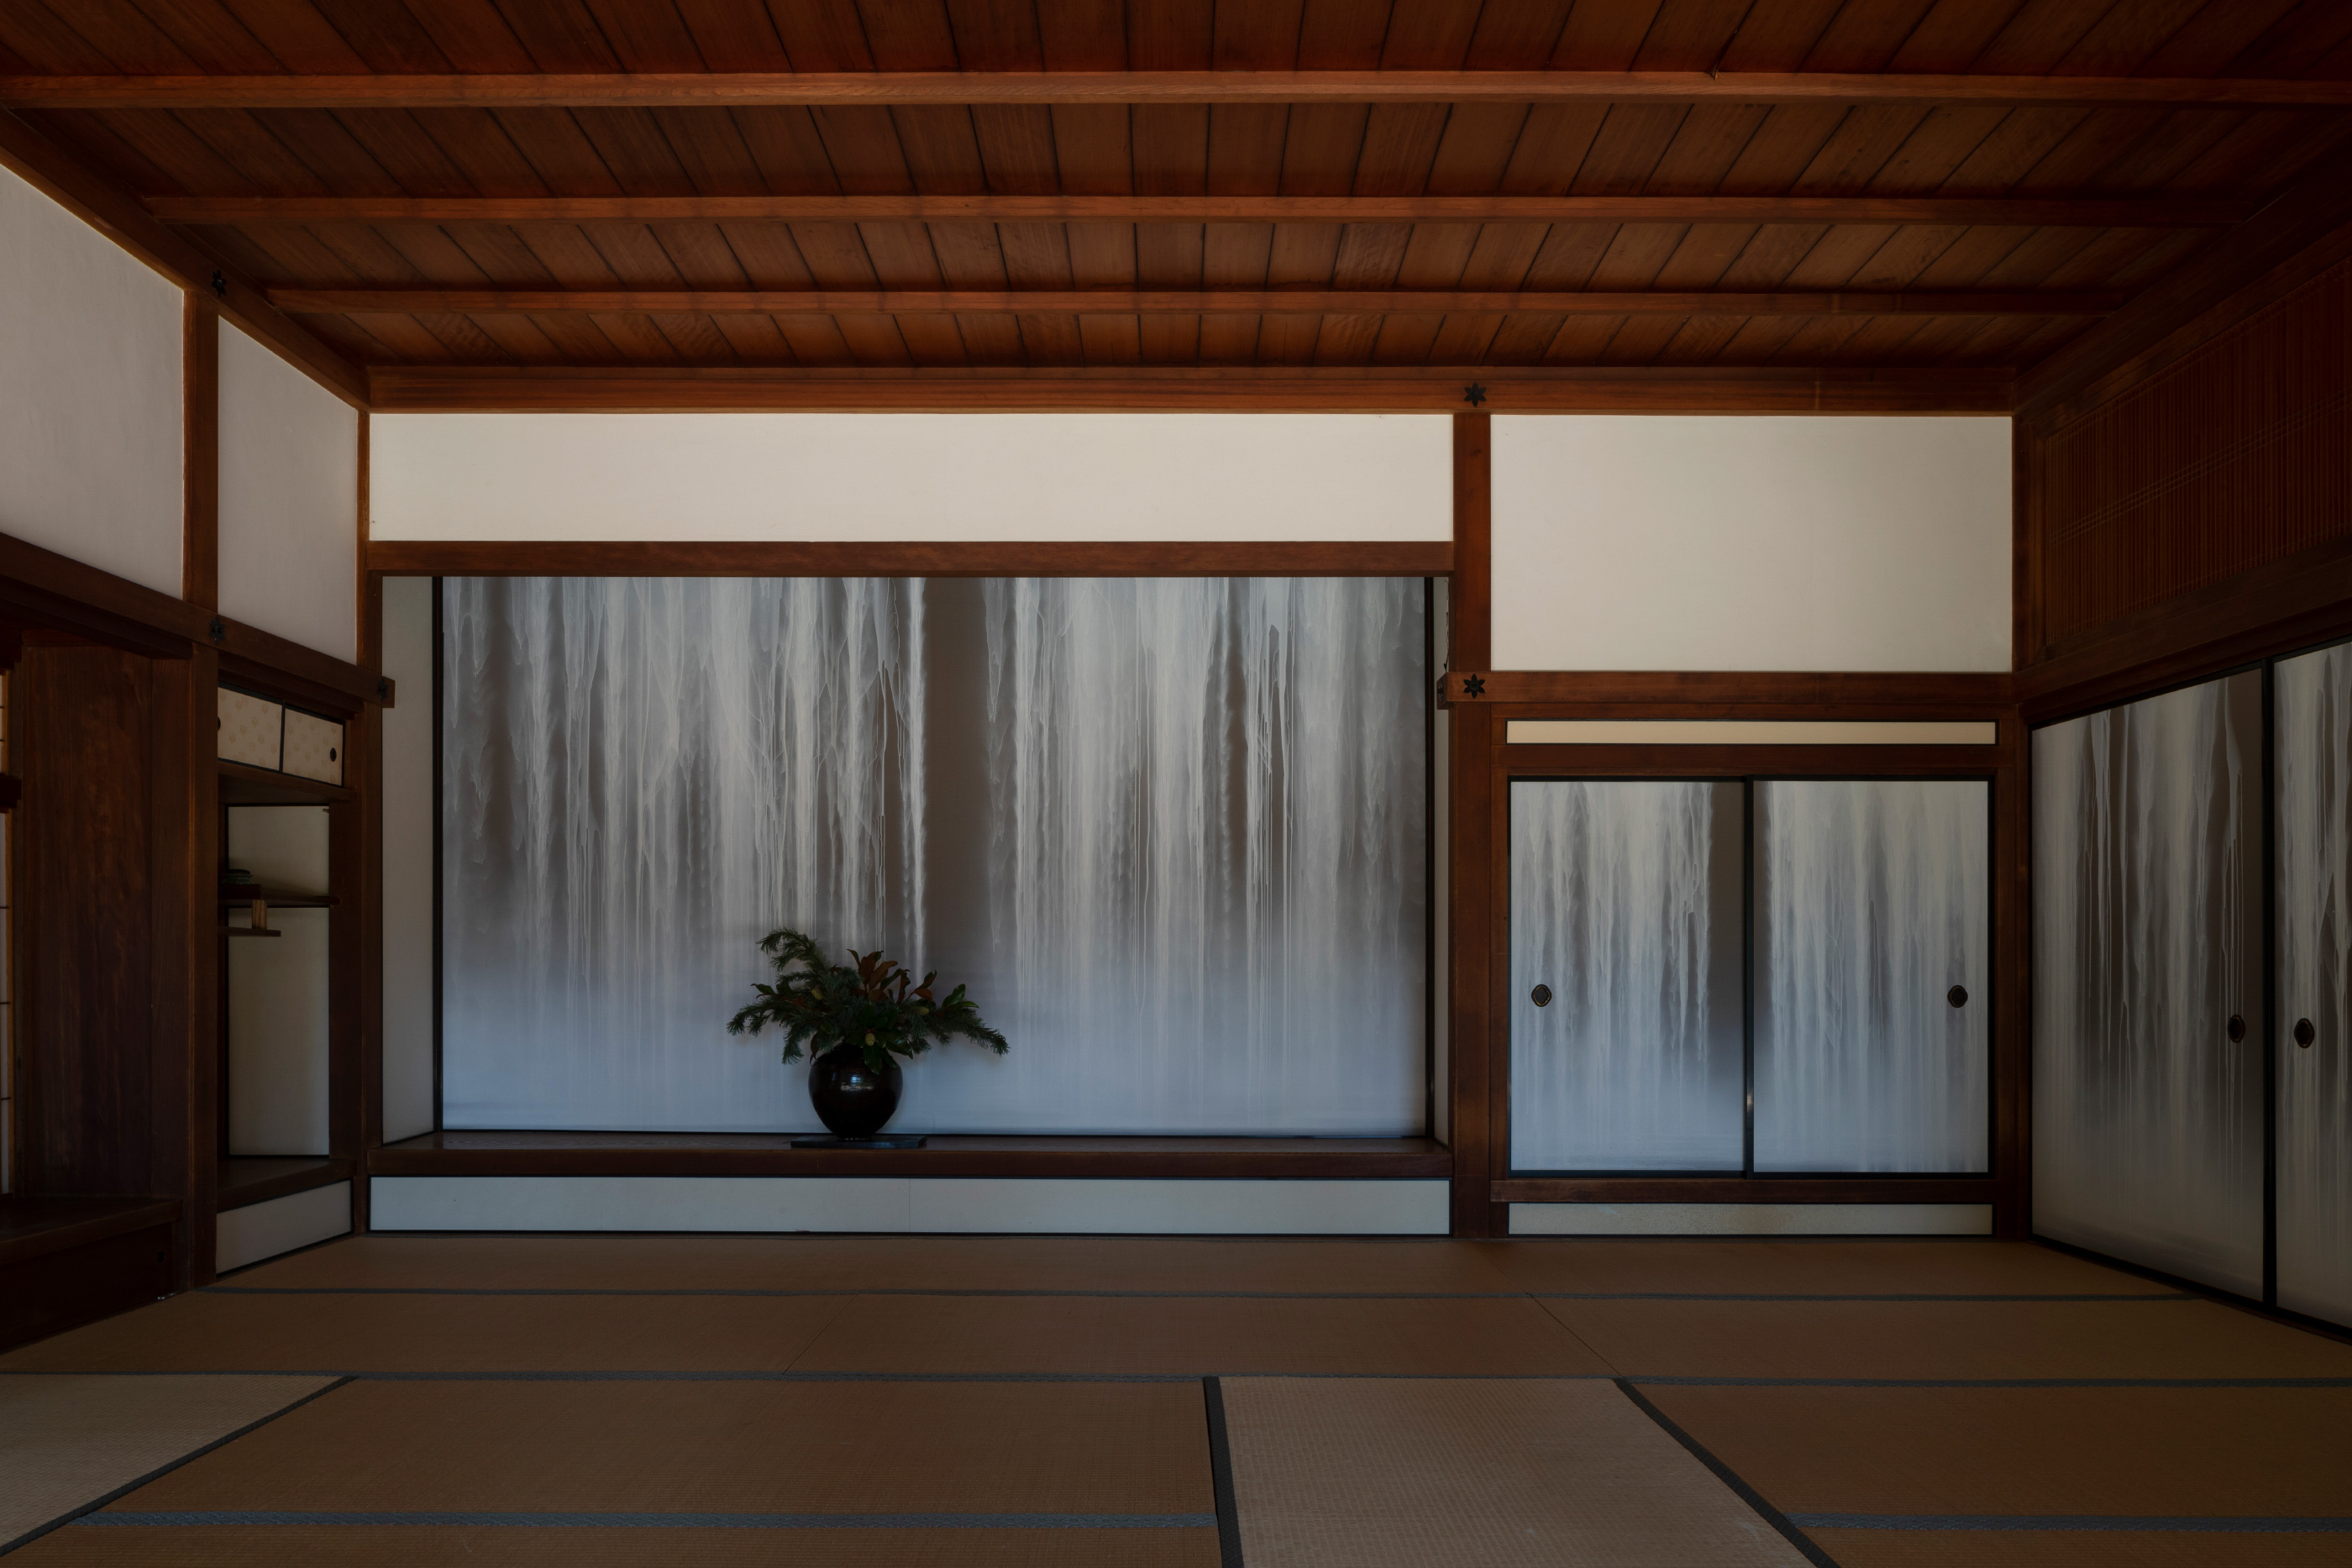 The interior of a 17th-century-style home, without the Shofuso and Modernism show